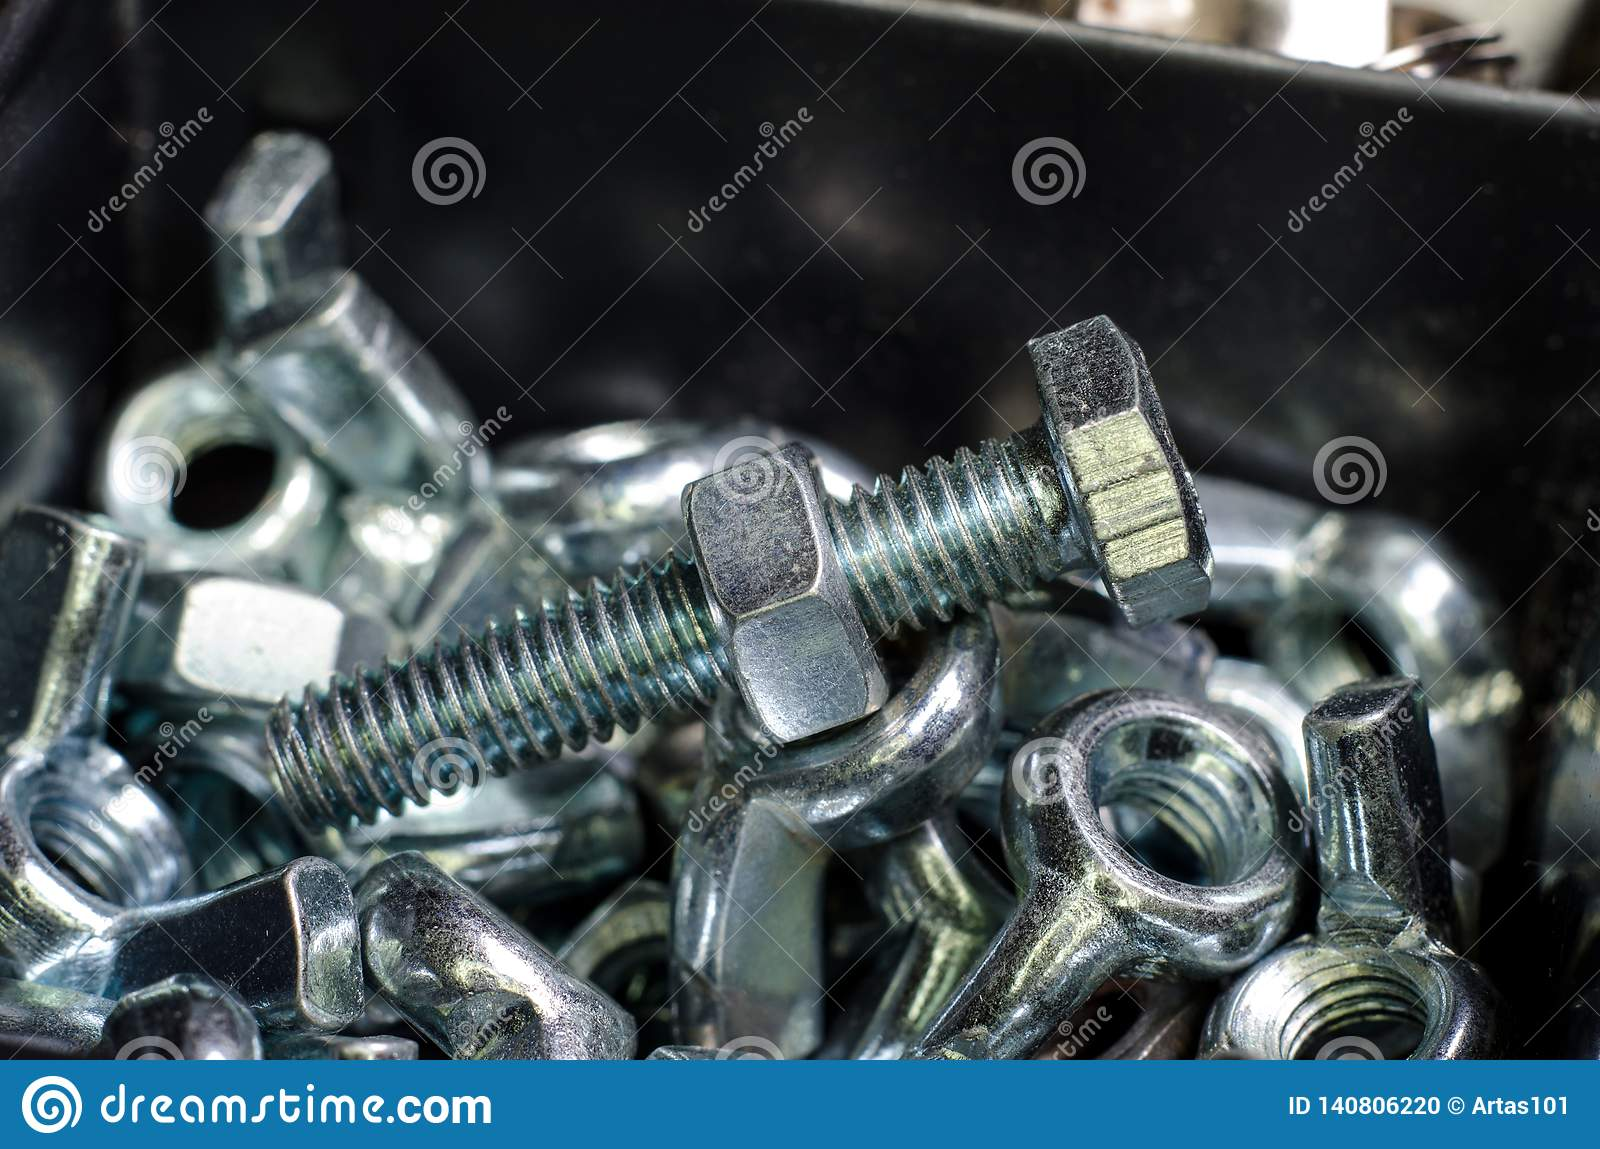 Nuts and bolts stock photo  Image of device, repair - 140806220